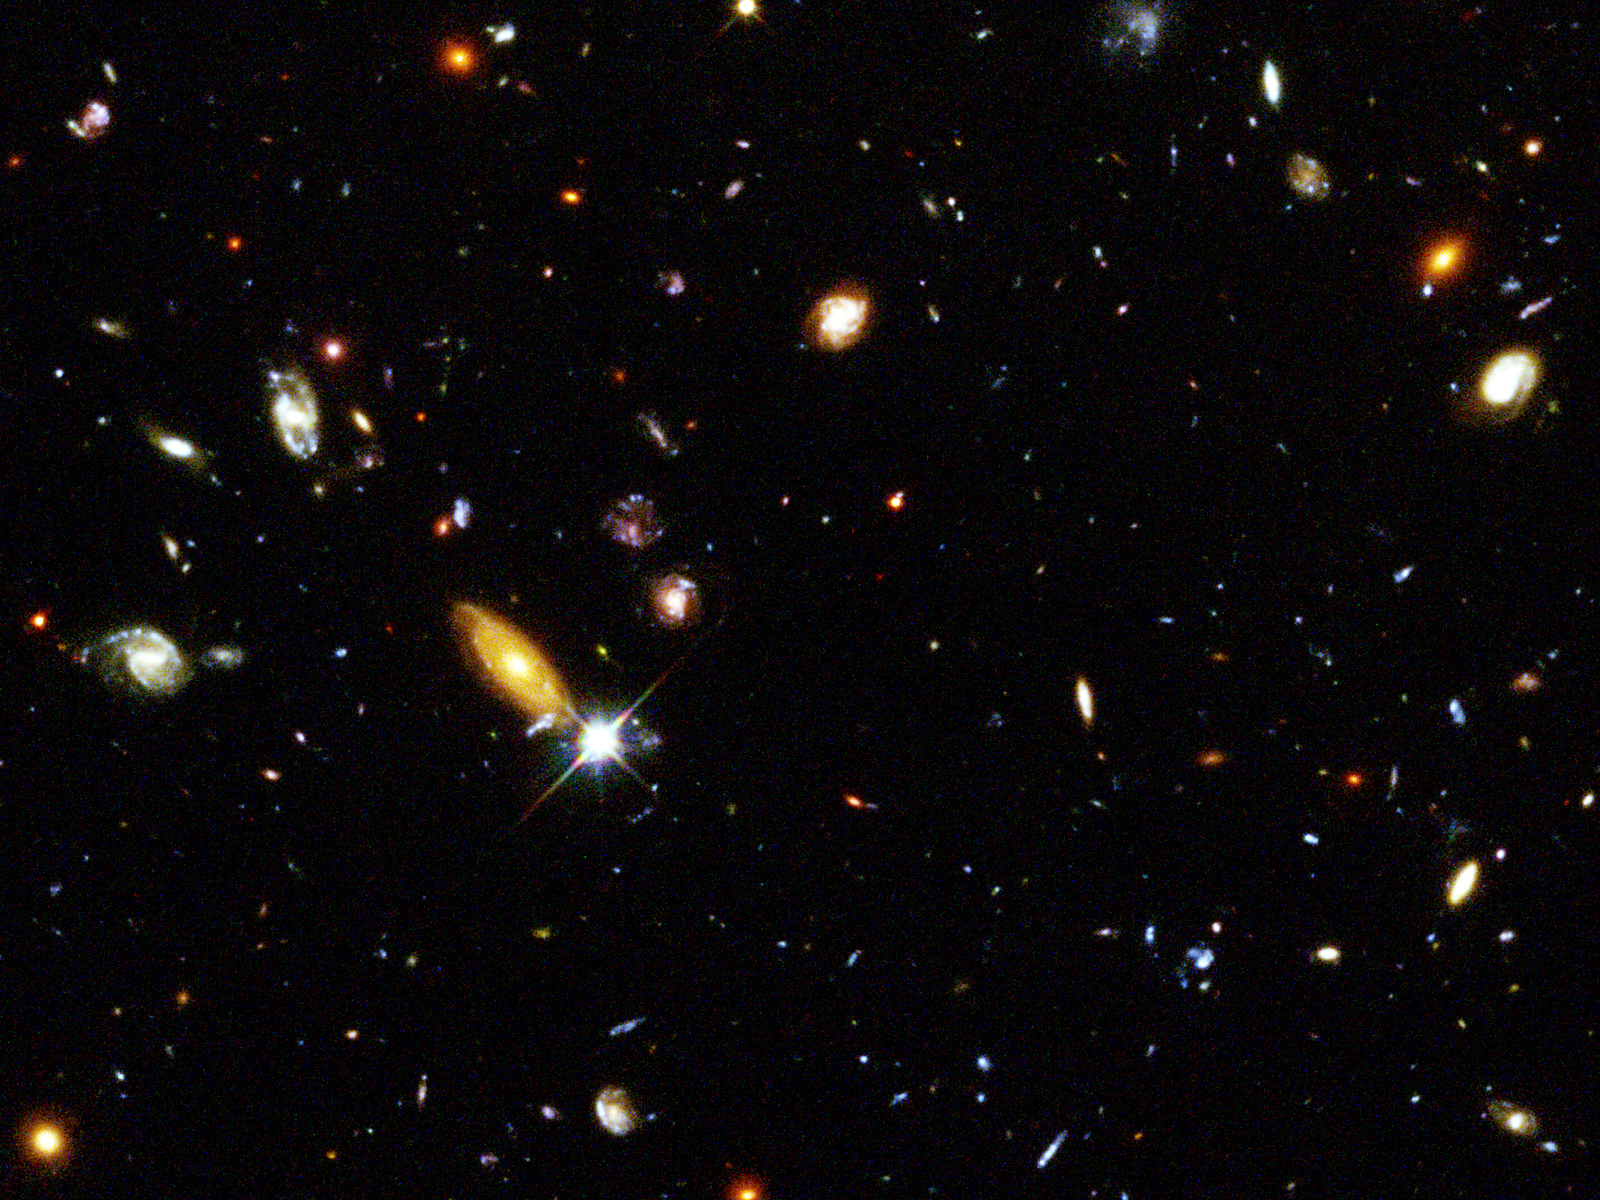 hubble deep field wallpaper 1600x1200-#6